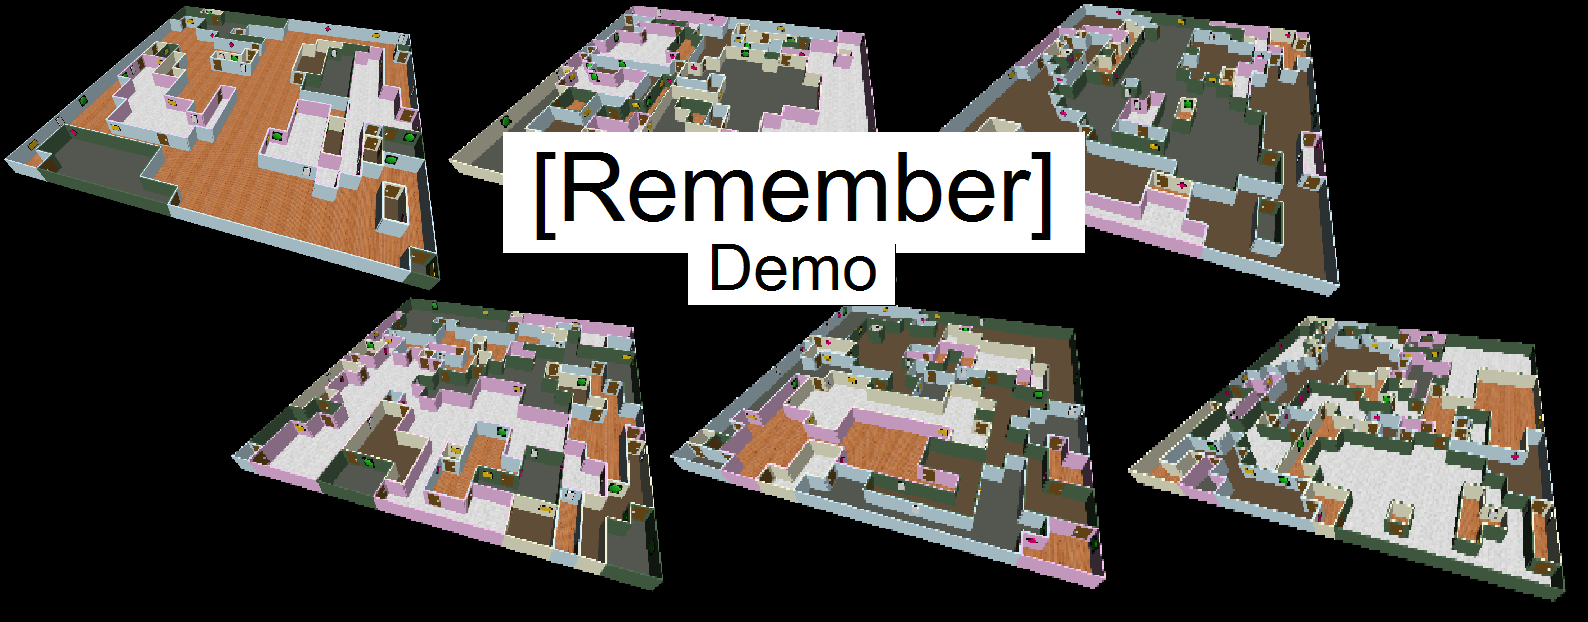 [Remember] - Demo